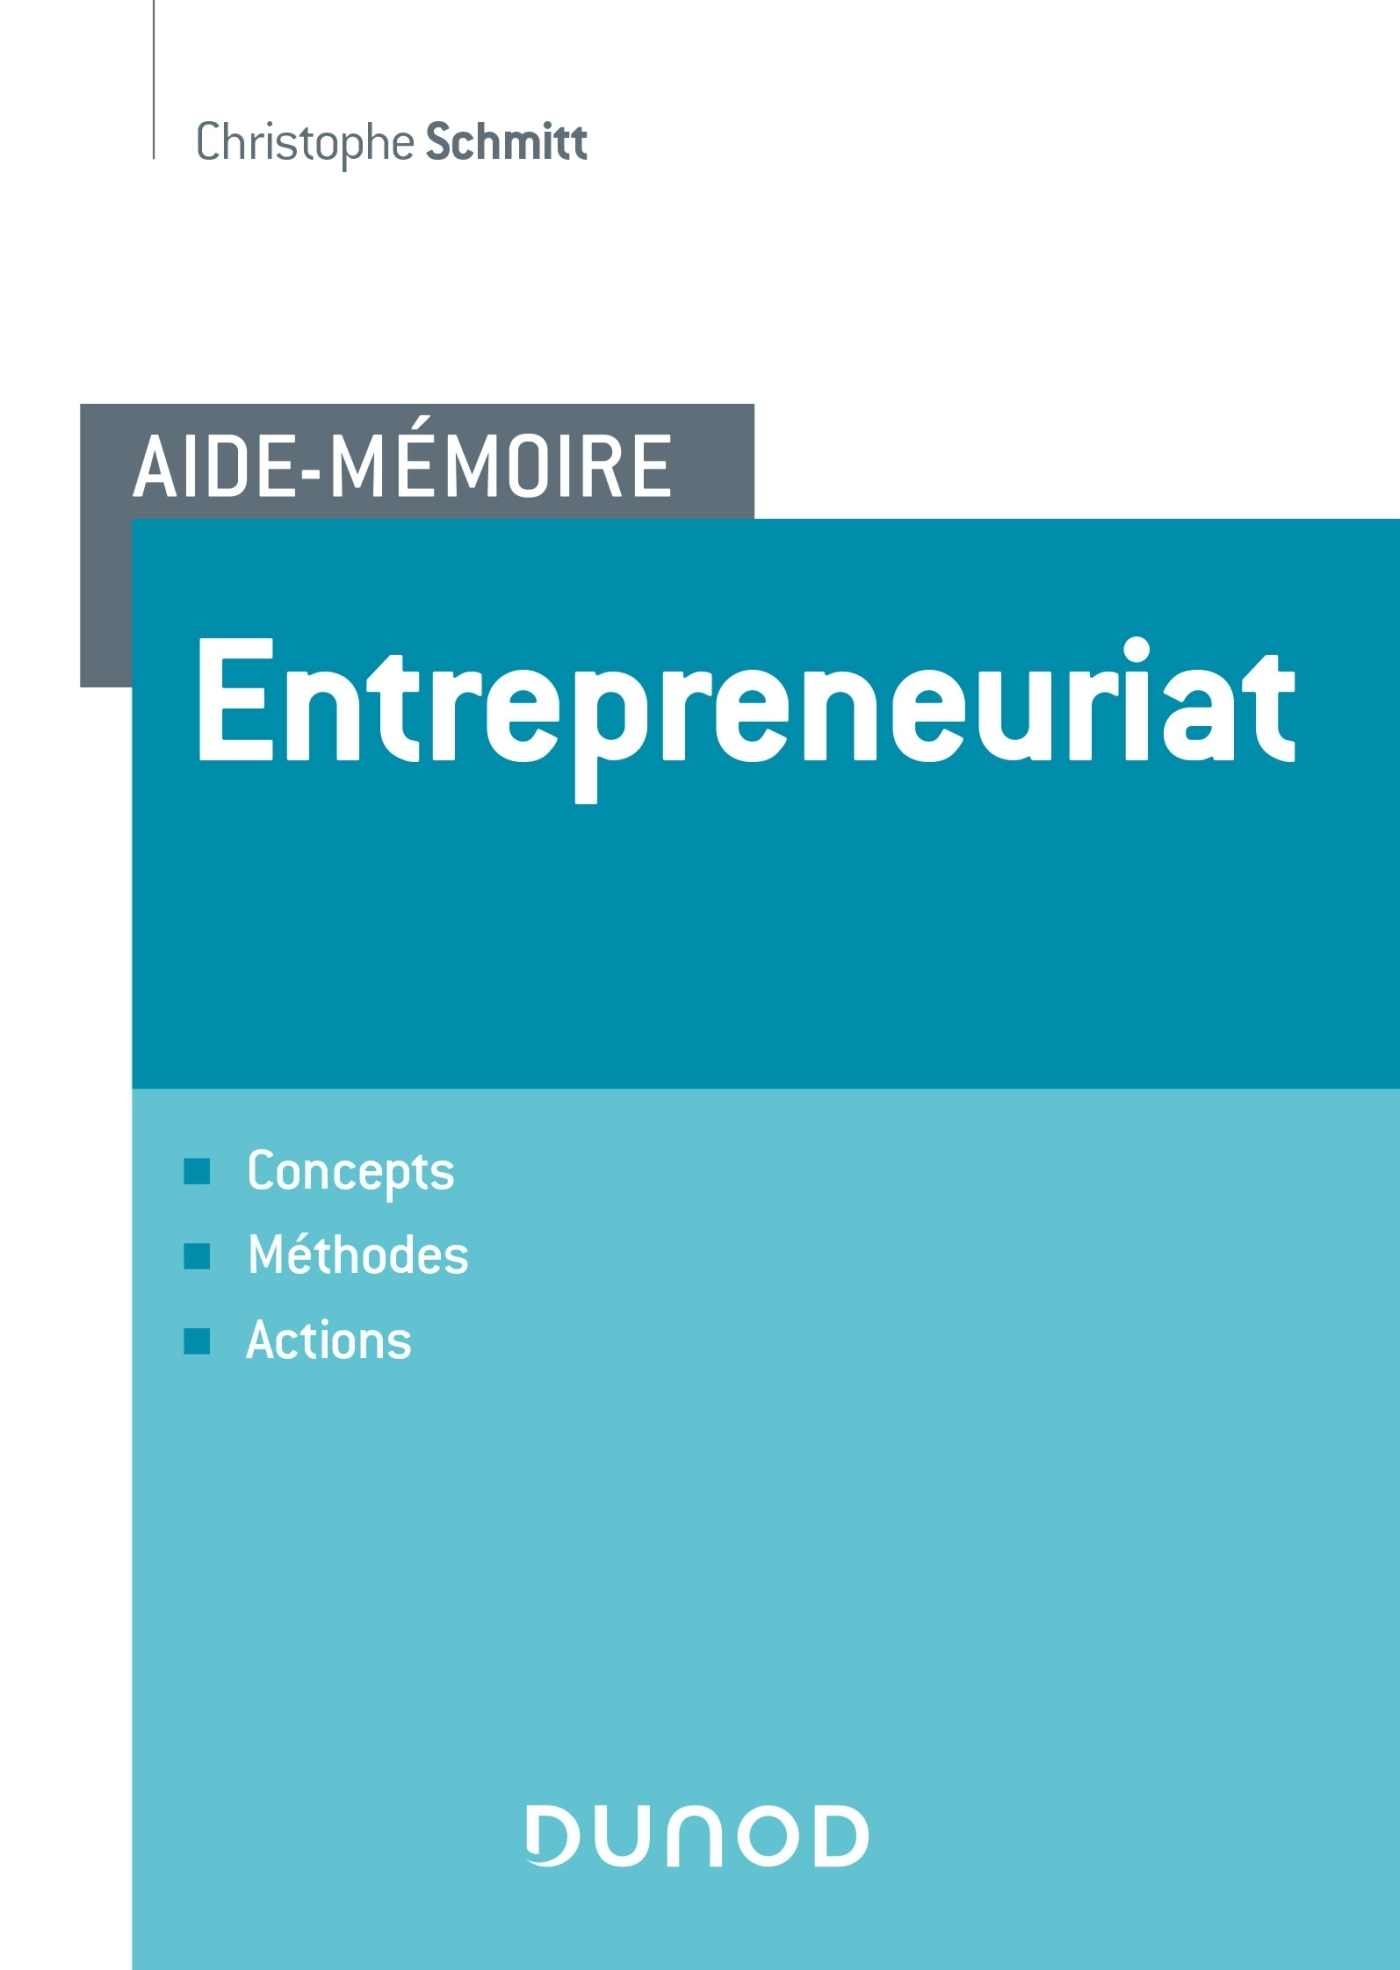 AIDE-MEMOIRE - ENTREPRENEURIAT - CONCEPTS, METHODES, ACTIONS